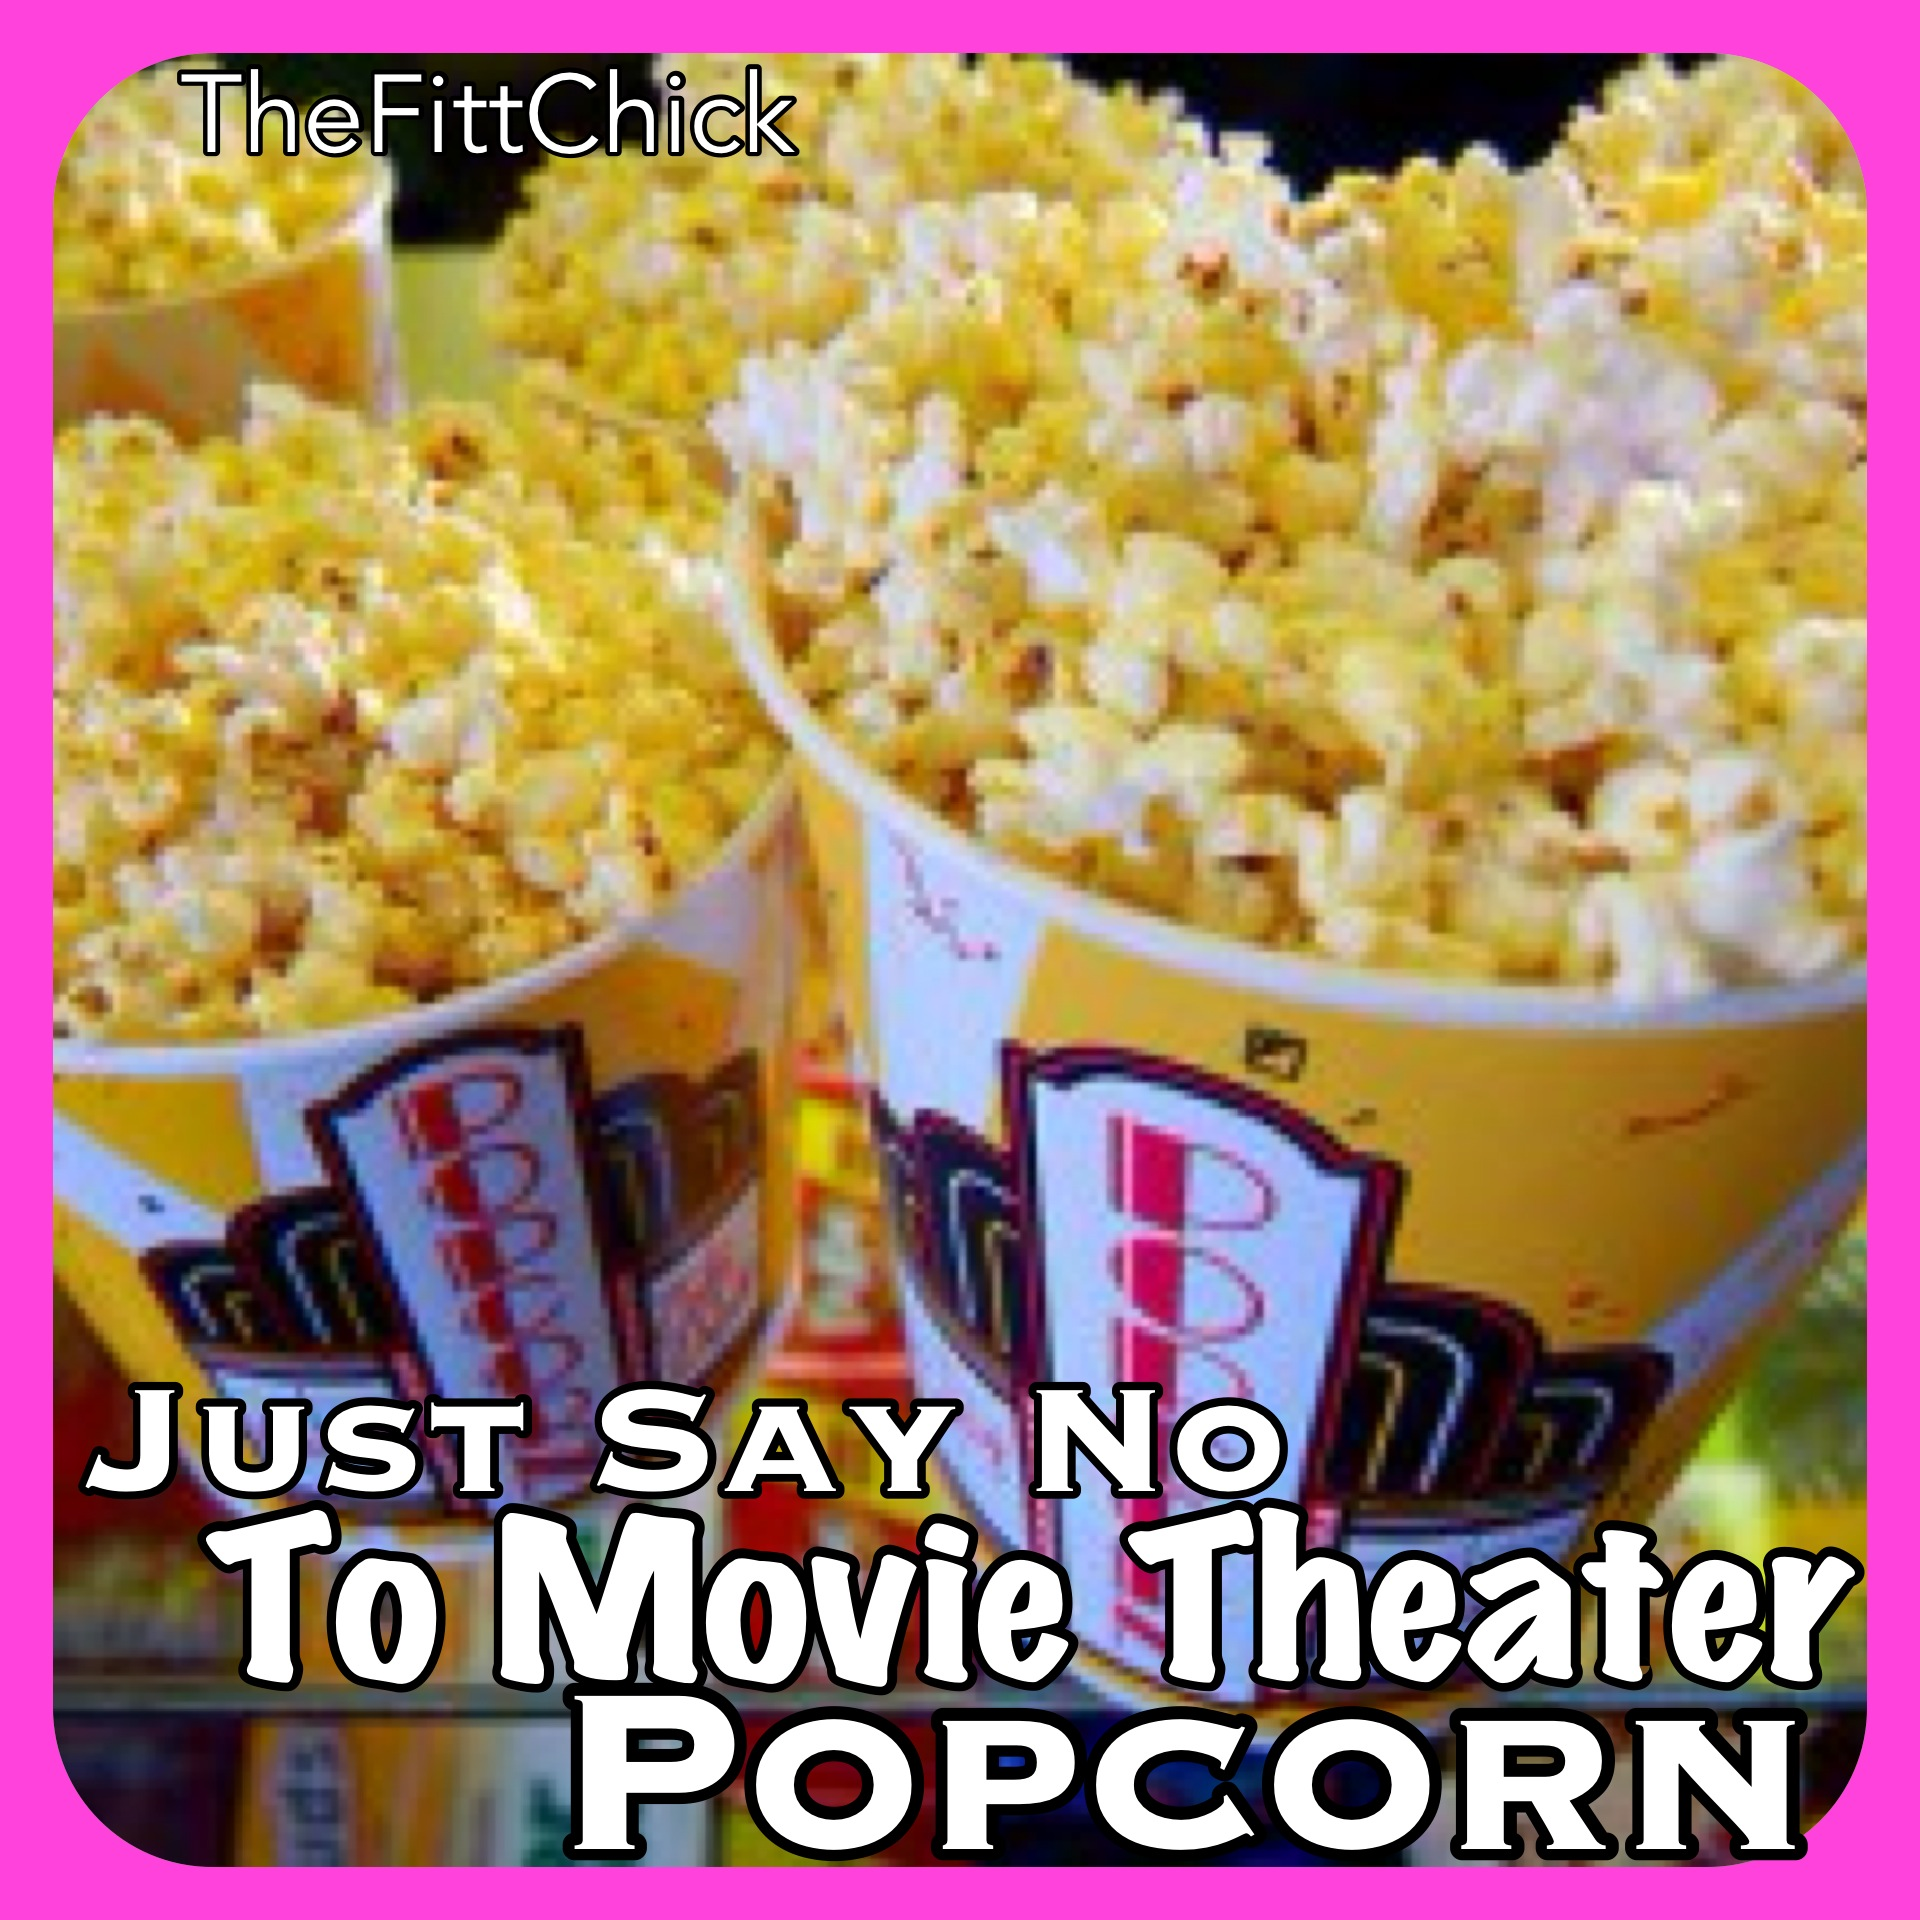 WHY MOVIE THEATER POPCORN COULD BE ONE OF THE WORST THINGS YOU